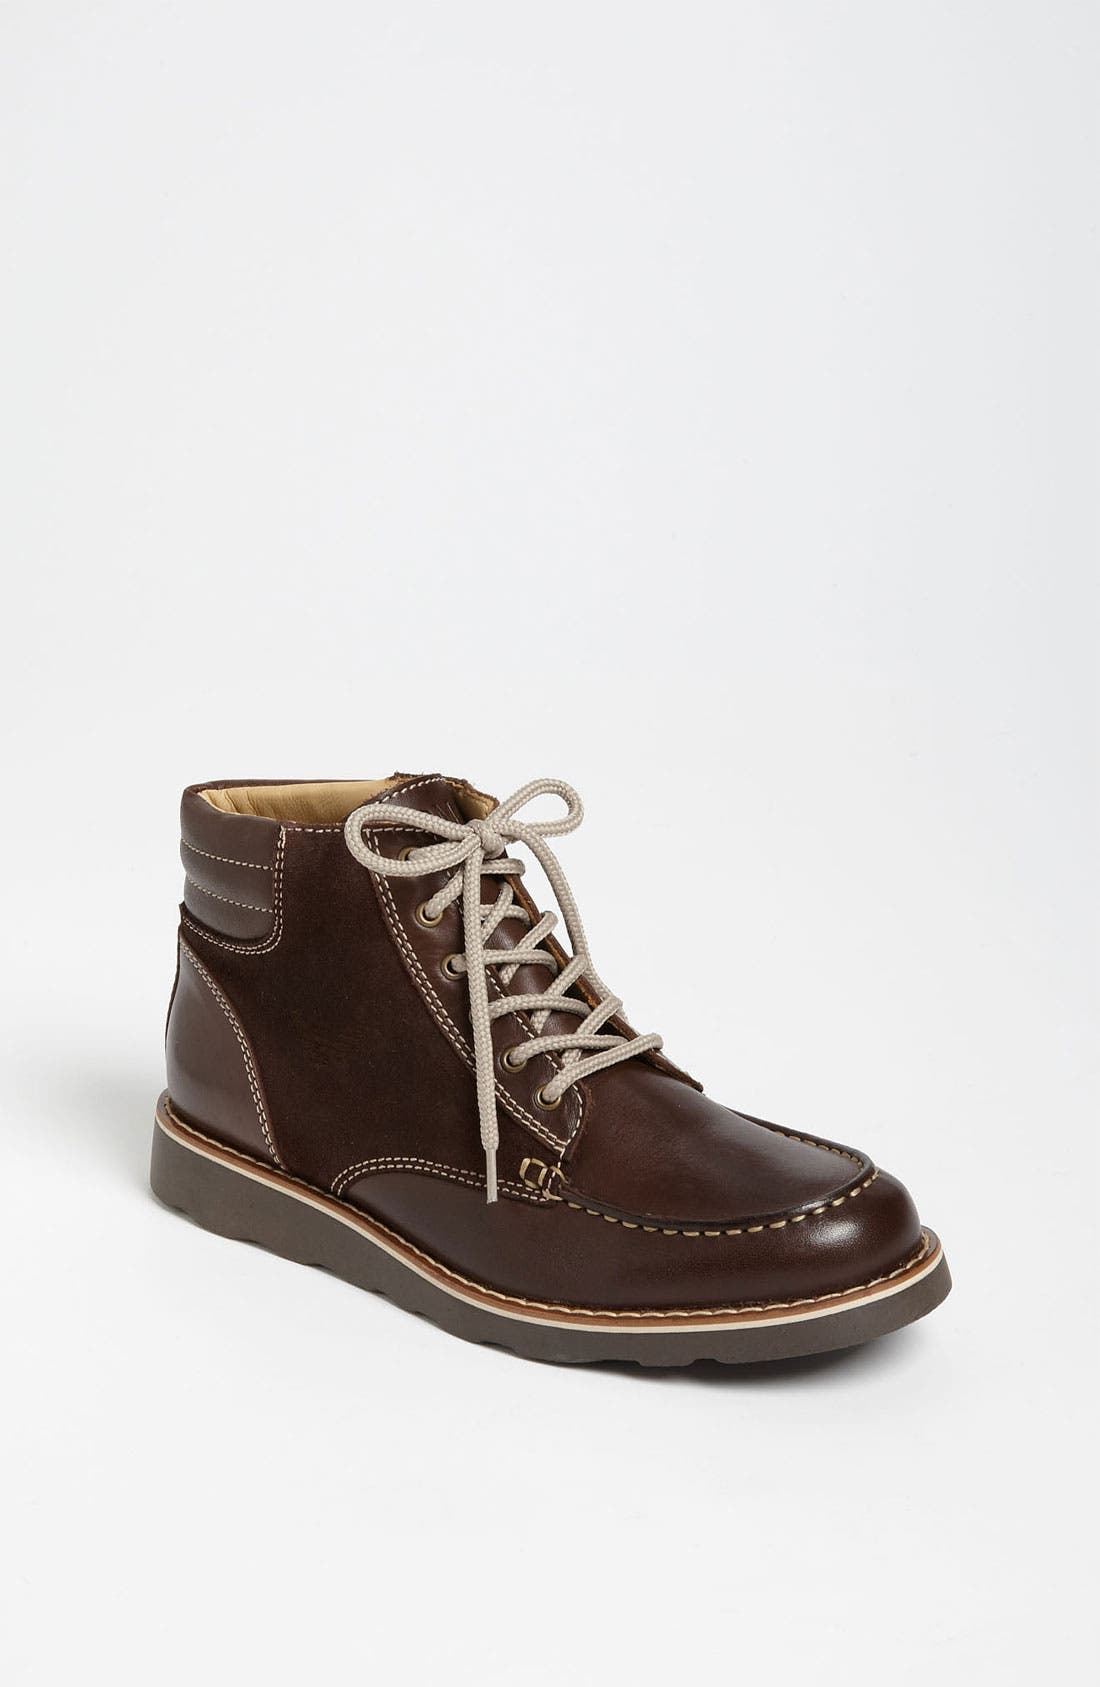 Alternate Image 1 Selected - Armani Junior Leather Boot (Toddler, Little Kid & Big Kid)